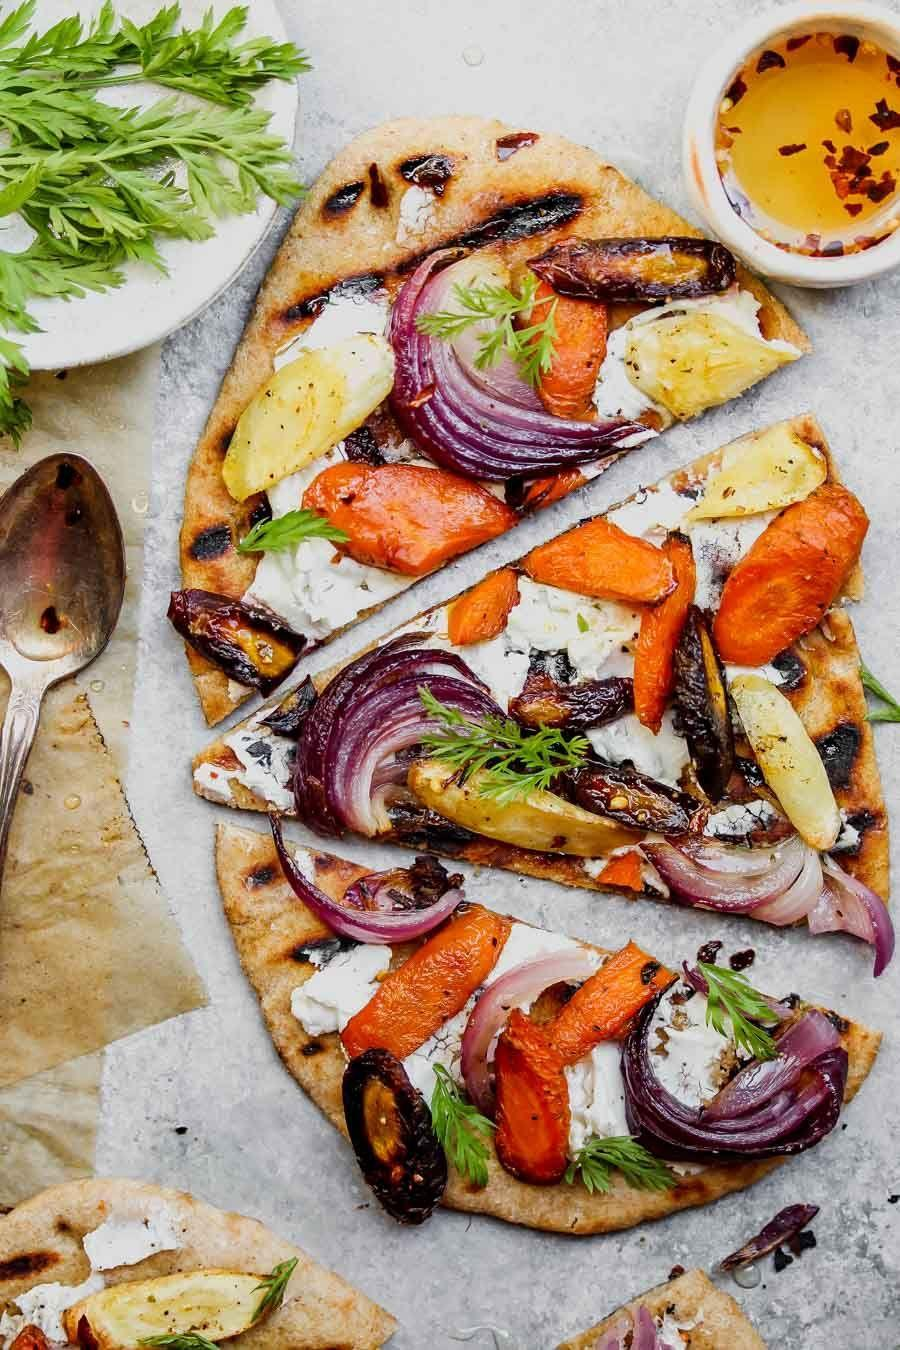 """<p>If you've never tried chili honey on your pizza, the time is now with this healthy take on traditional pizza. The best part about it is that you can customize it to your liking and add as many veggies or fruits to it as you want. </p><p><strong><em>Get the recipe at <a href=""""https://dishingouthealth.com/root-vegetable-and-goat-cheese-mini-pizzas-with-chili-honey/"""" rel=""""nofollow noopener"""" target=""""_blank"""" data-ylk=""""slk:Dishing Out Health."""" class=""""link rapid-noclick-resp"""">Dishing Out Health.</a></em></strong></p>"""